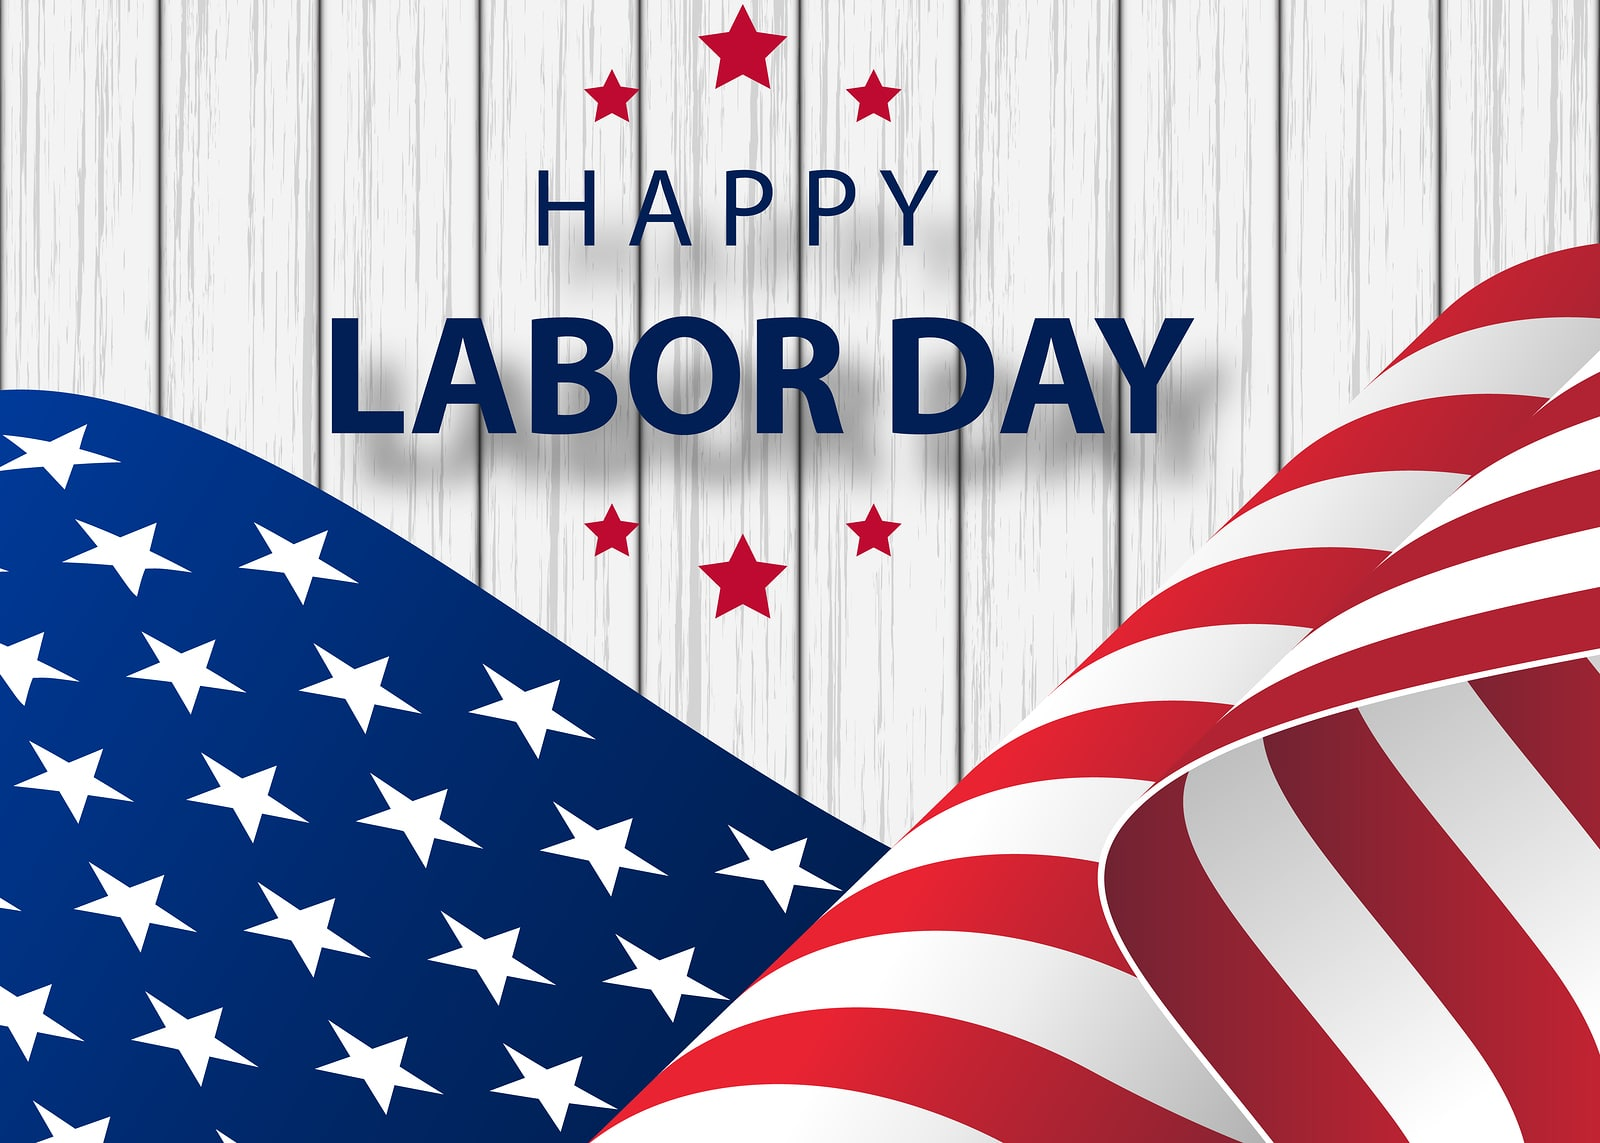 Labor Day September 2, 2019